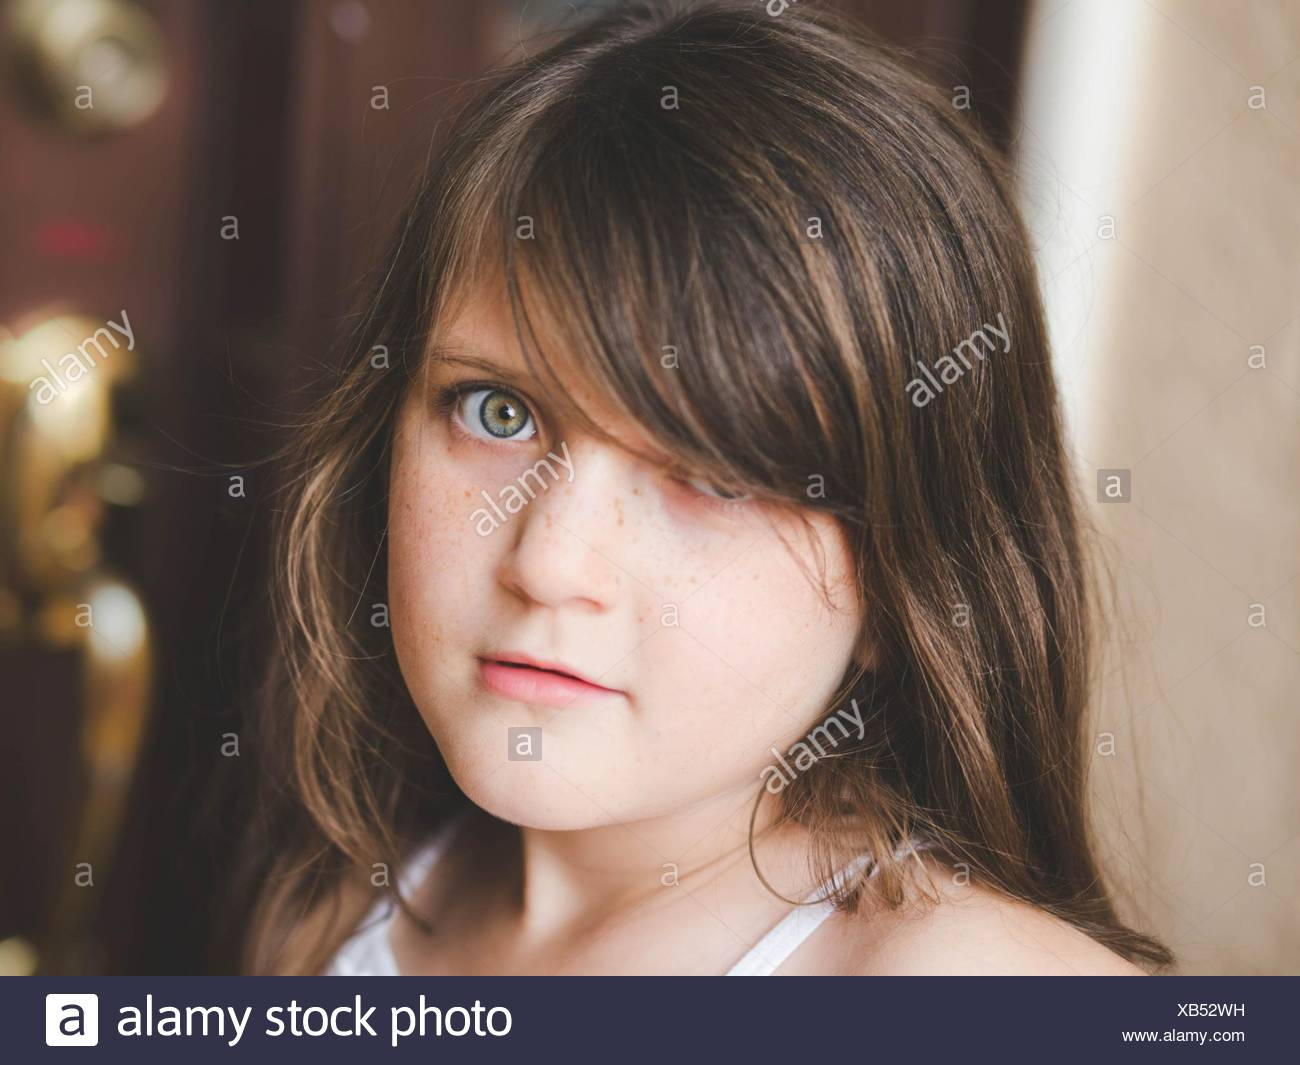 Adolescent pré girl looking at Camera Photo Stock